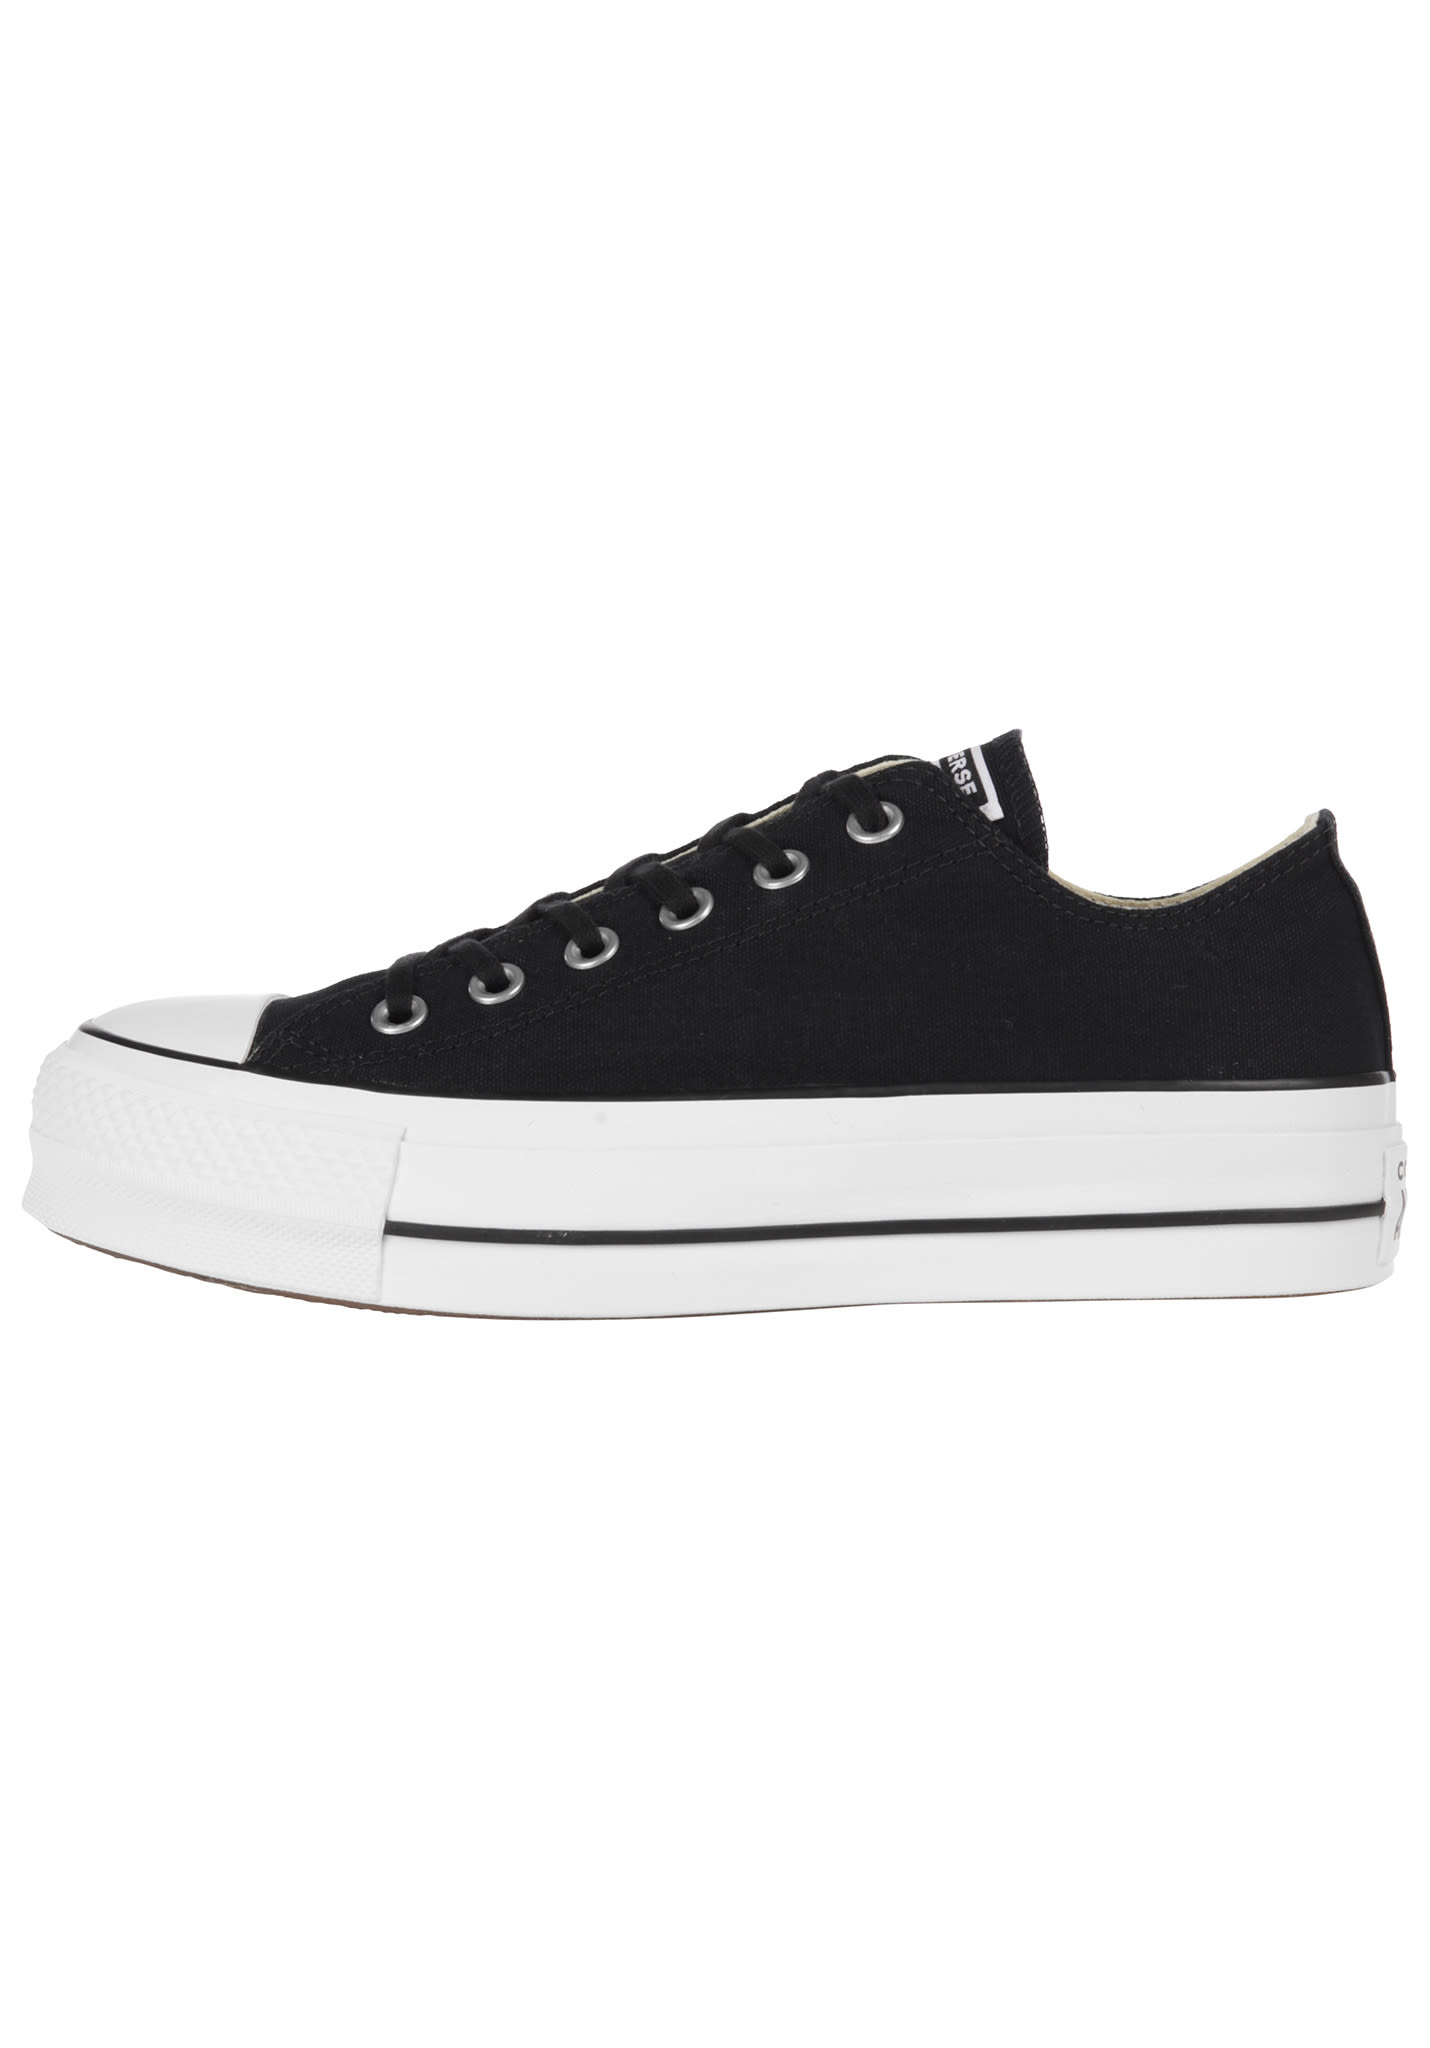 ad9b76057 Converse Chuck Taylor All Star Lift Ox - Sneakers for Women - Black -  Planet Sports